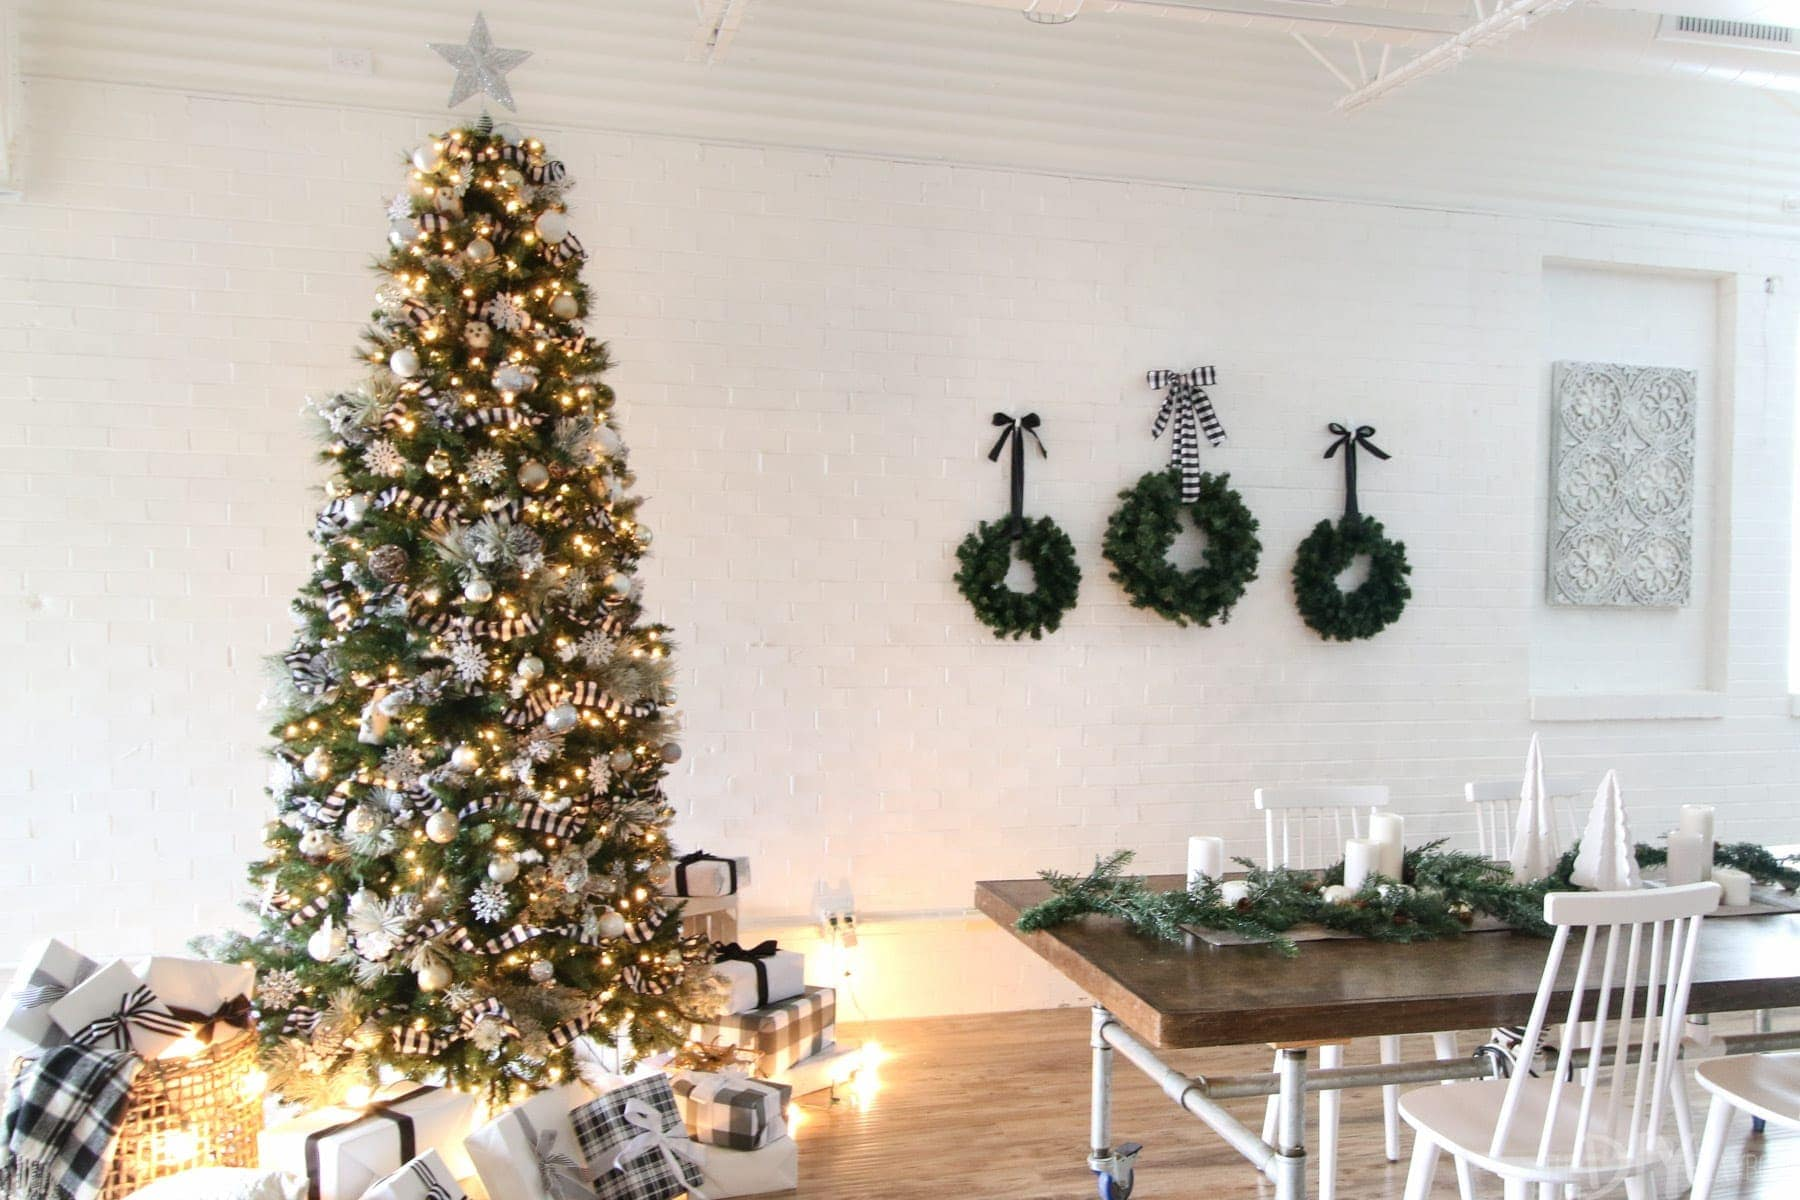 This Christmas tree decorated in black and white looks so cute next to the three wreaths: simple, elegant holiday decorating.